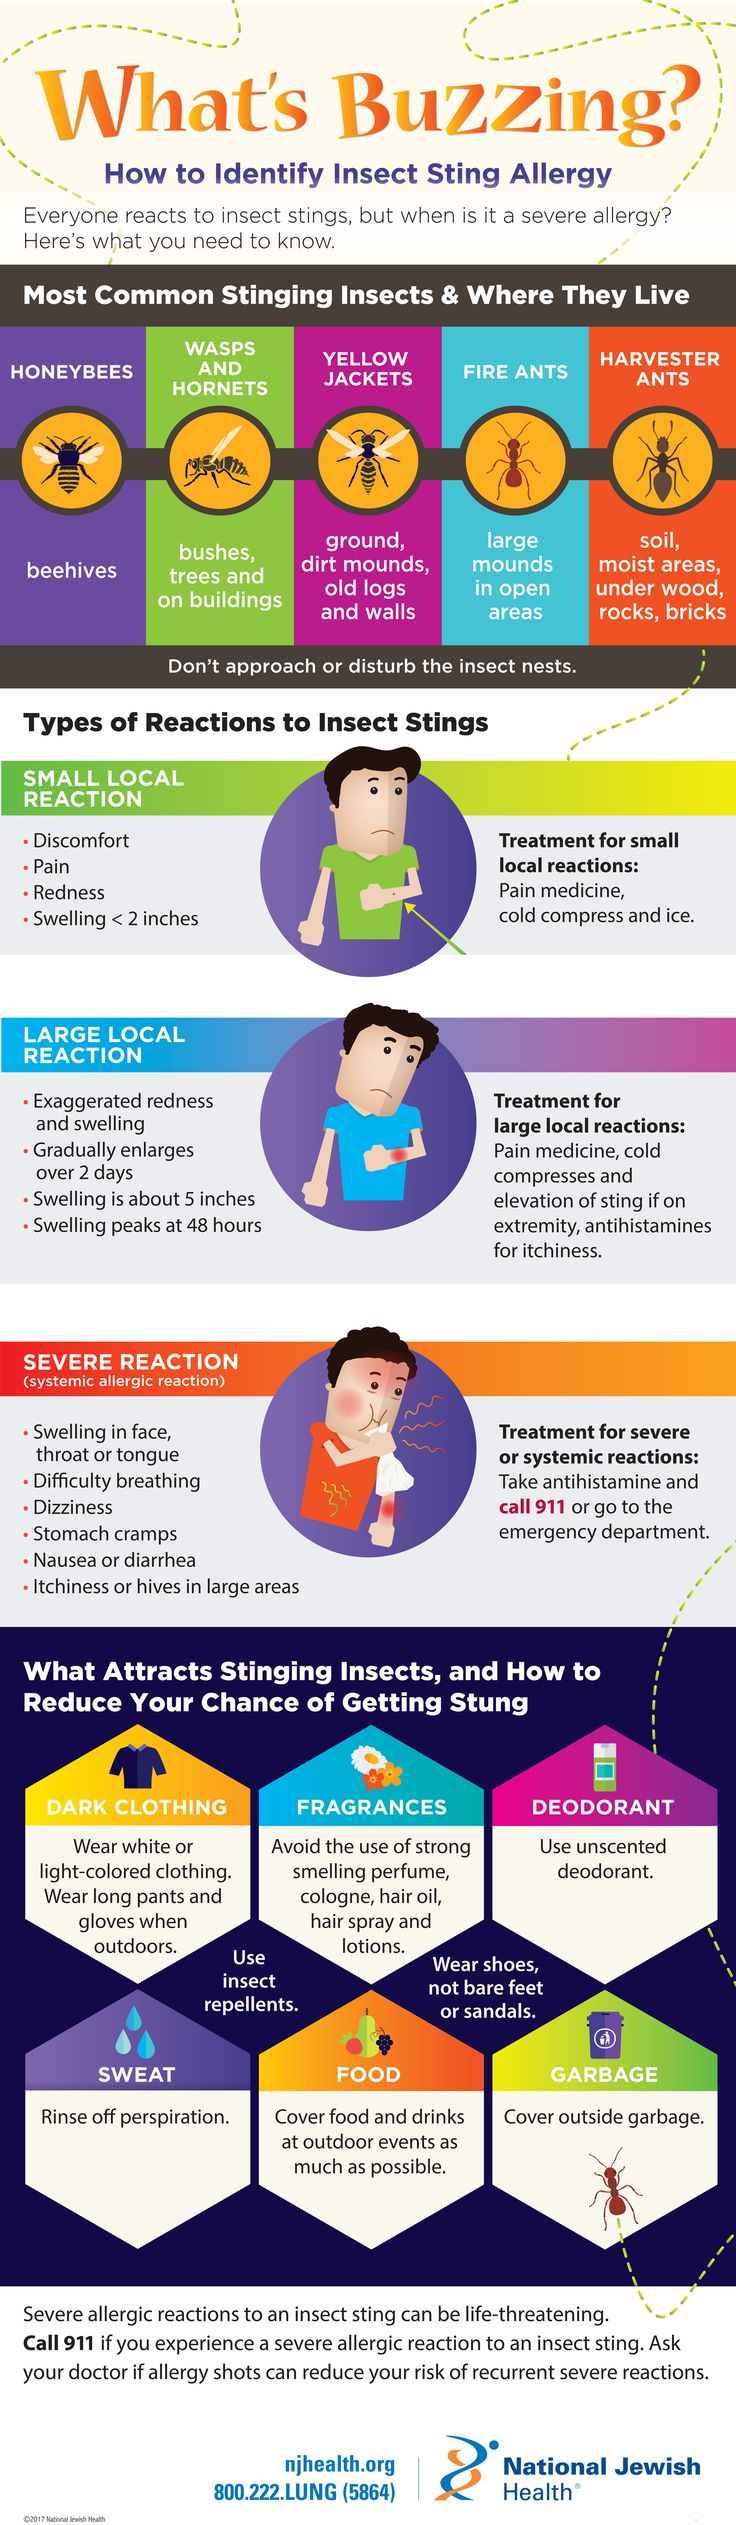 Did you know that about 10 percent of us are allergic to insect venom and are at risk for having a severe reaction? Learn which stinging insects to avoid, the symptoms of a severe allergy and how to treat reactions. #infographic